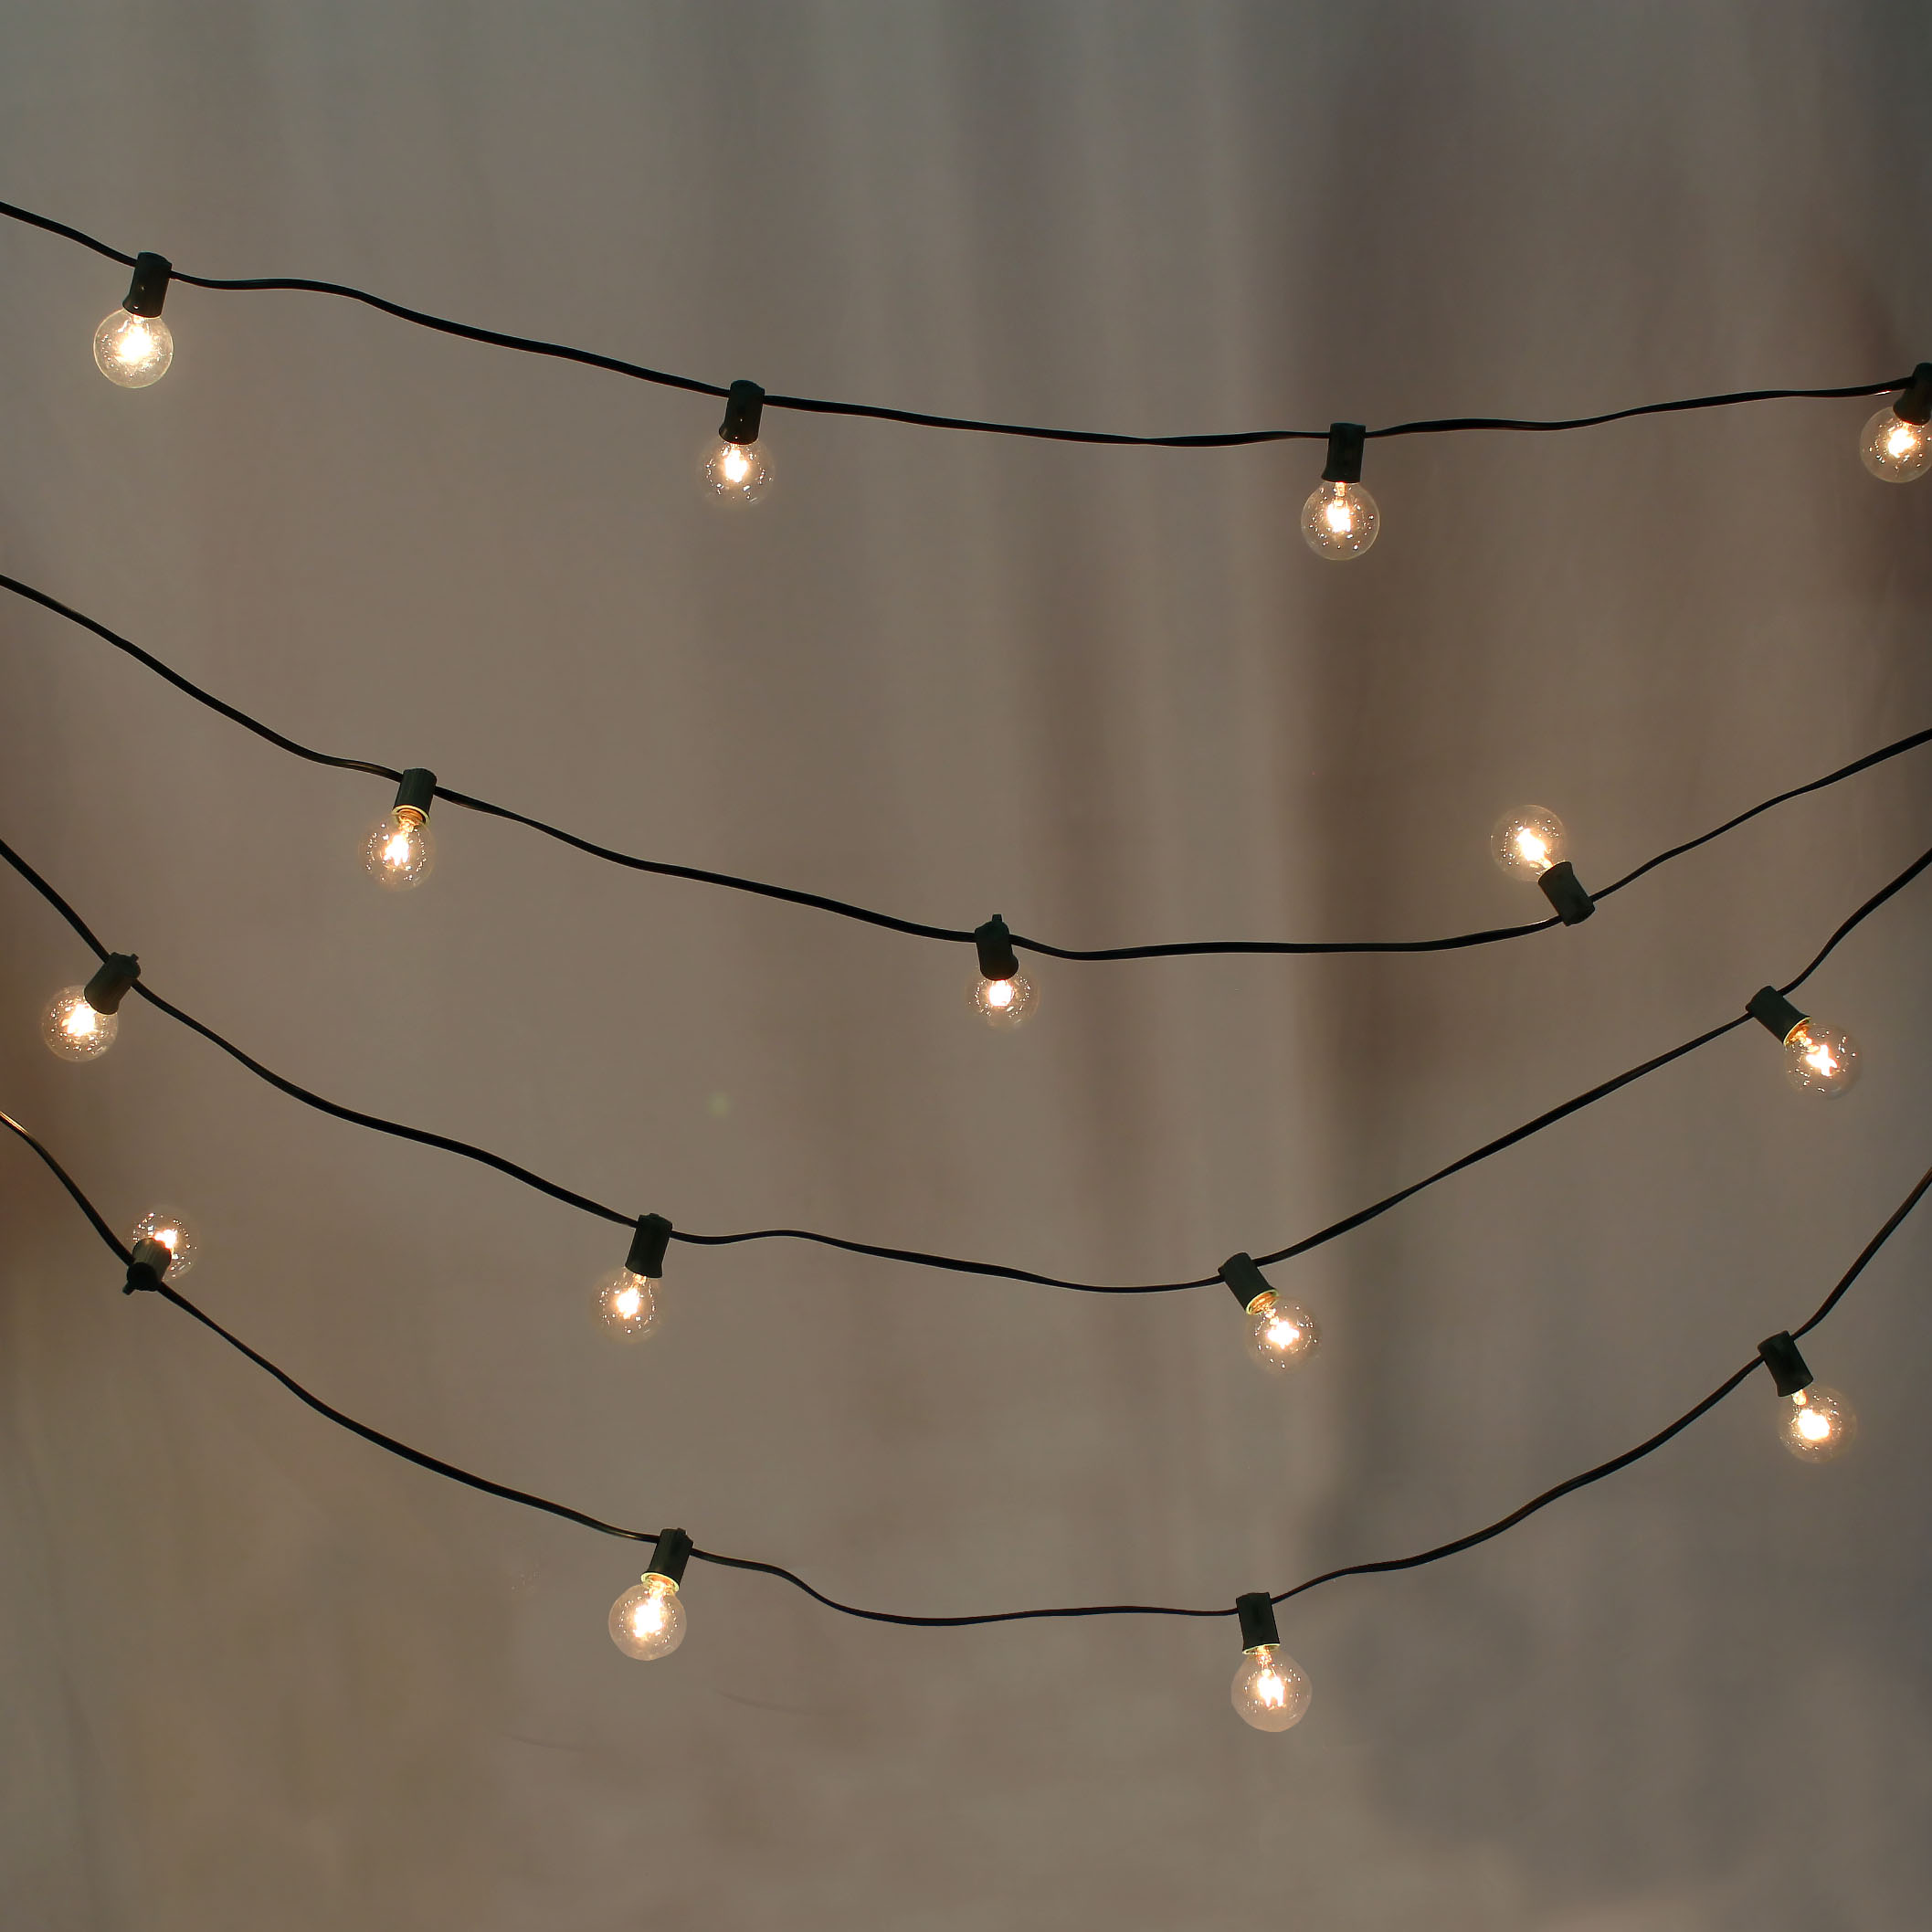 Cafe String Lights 50' Green Strand